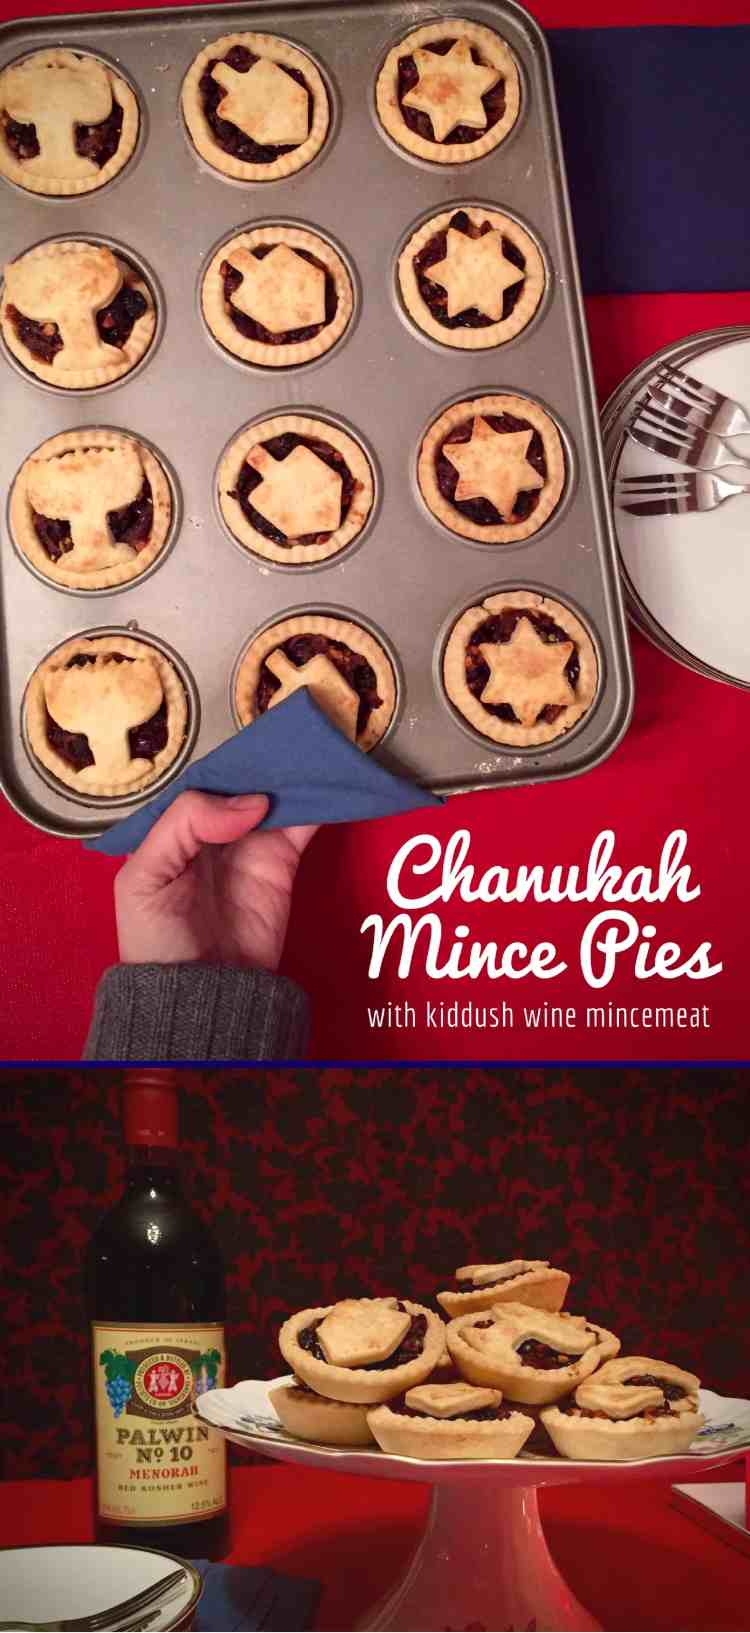 The quick & easy filling for these festive mince pies is fruity, sweet, spicy and delicious, enhanced with kiddush wine and rum! Make a batch today ?